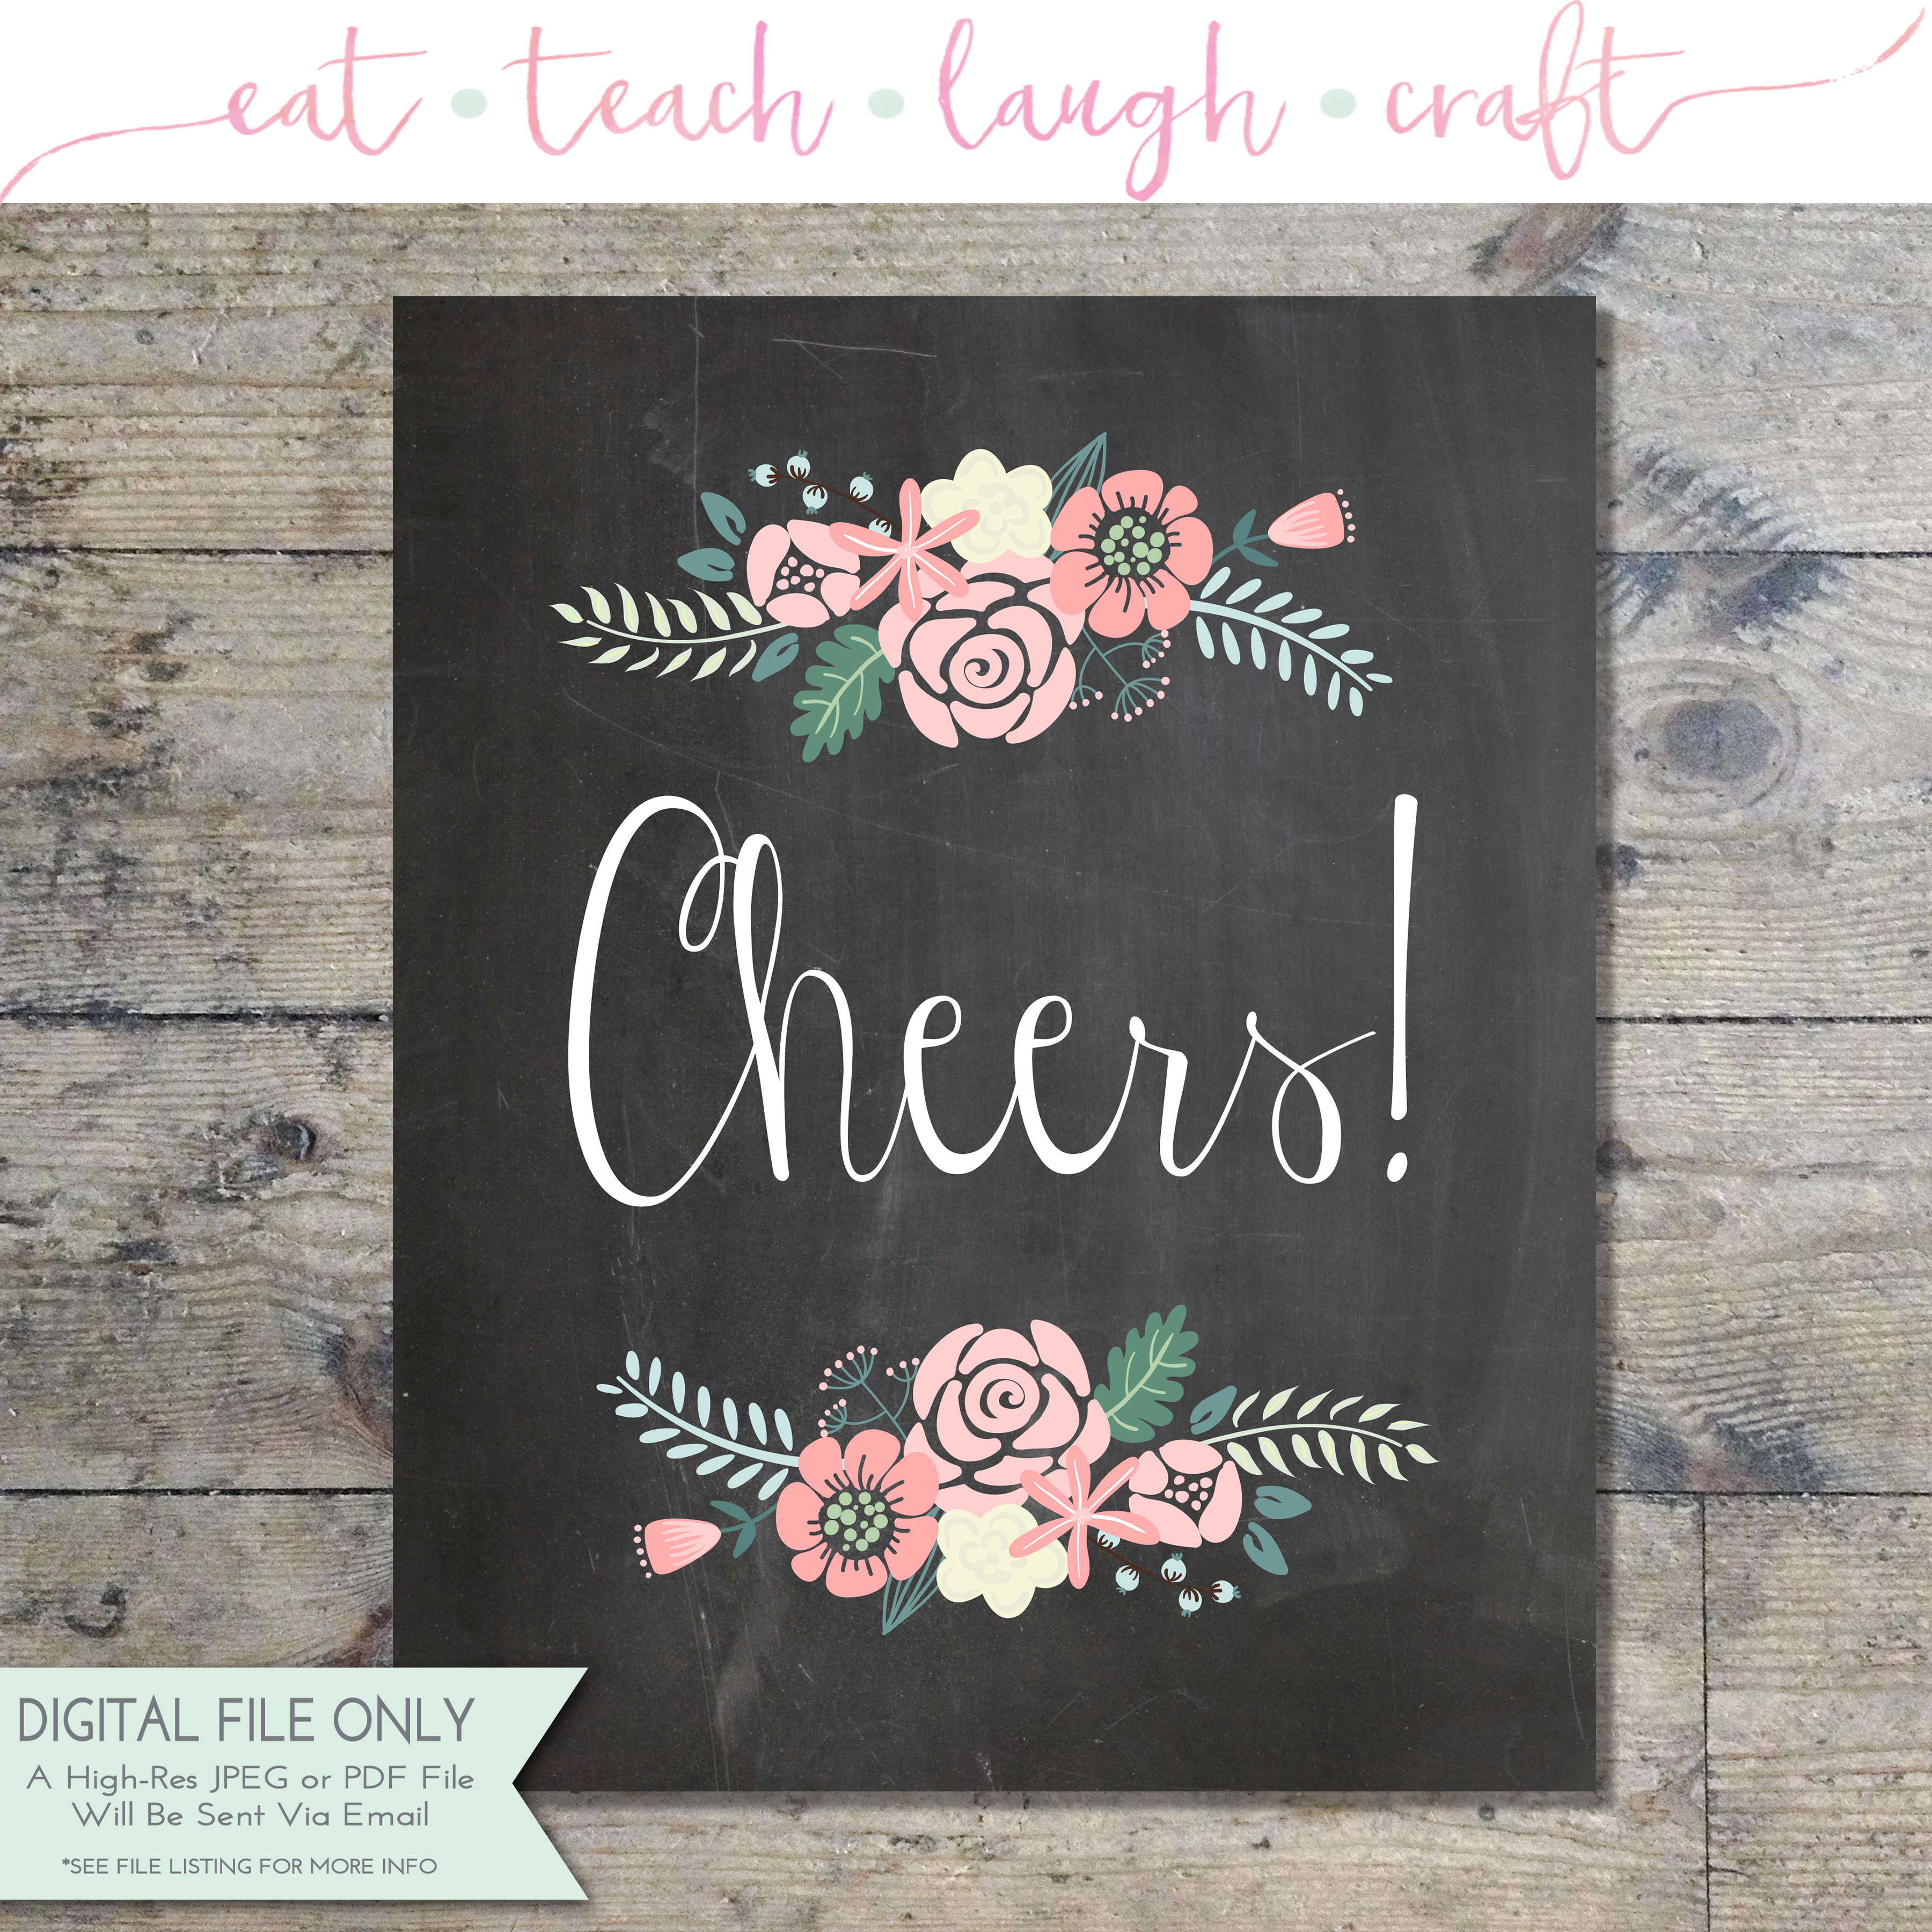 Home Sweet Home Quotes Wallpaper Cheers Wedding Chalkboard Floral Print Bridal Shower